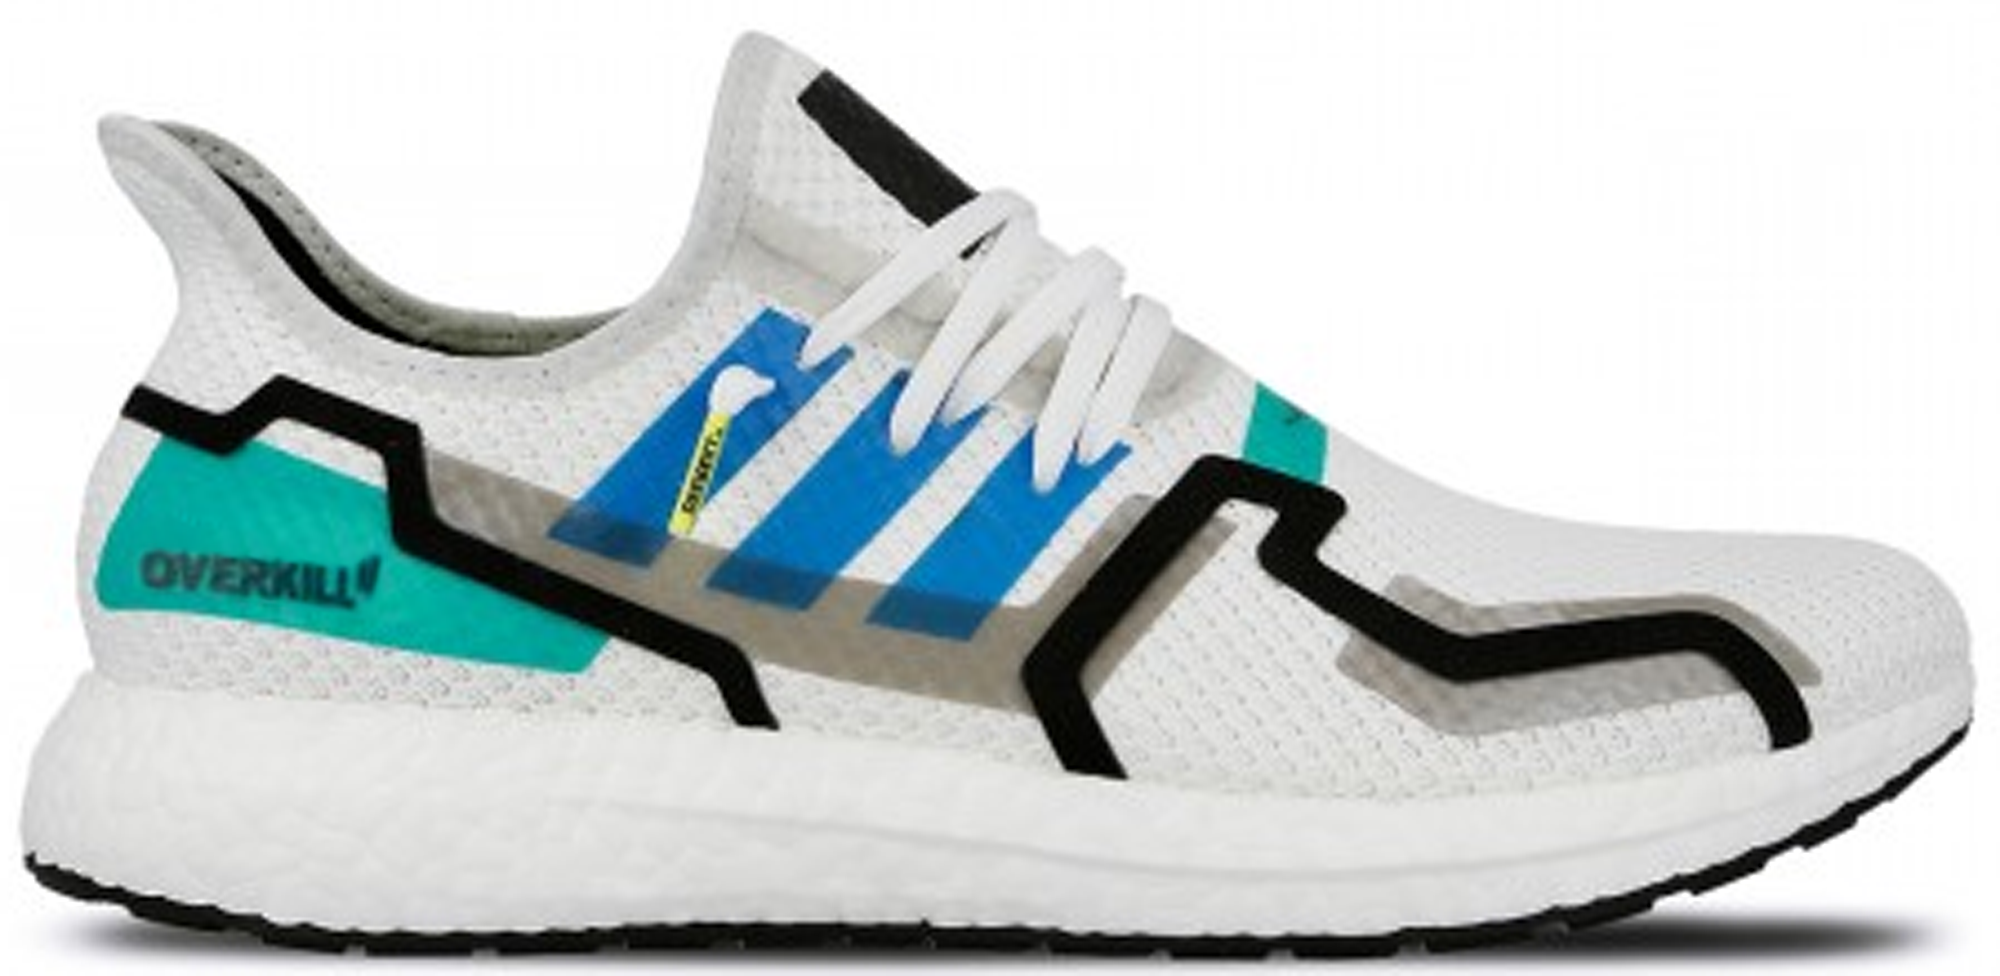 9bbc896951ff3 promo code for adidas speedfactory am4 8056c c7f22